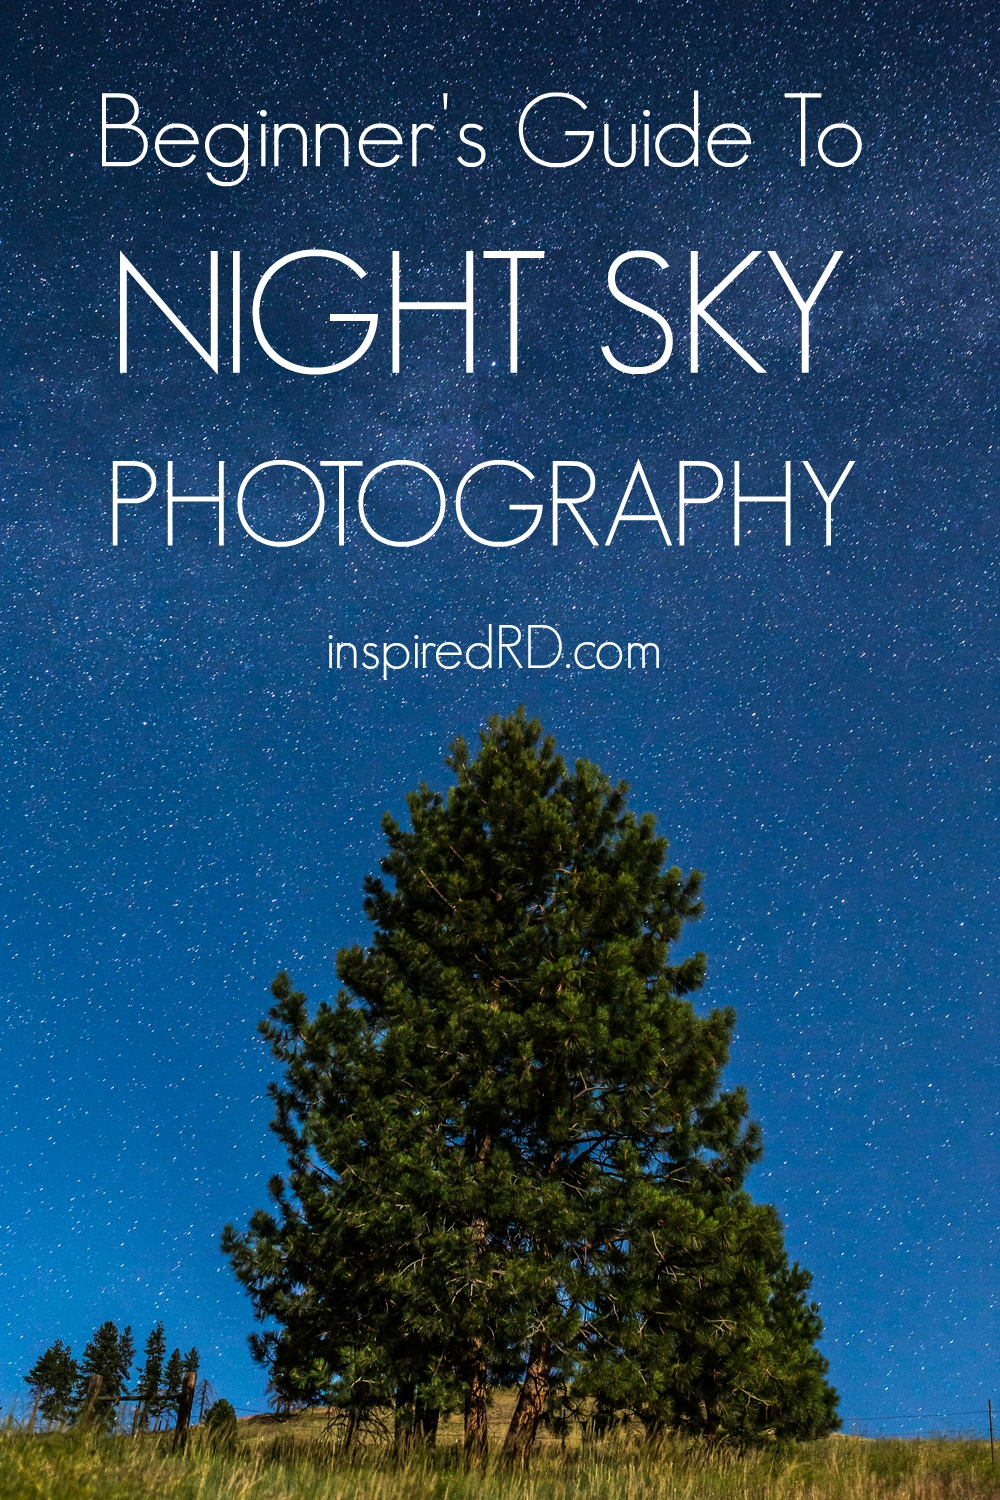 Beginner's Guide to Night Sky Photography | InspiredRD.com